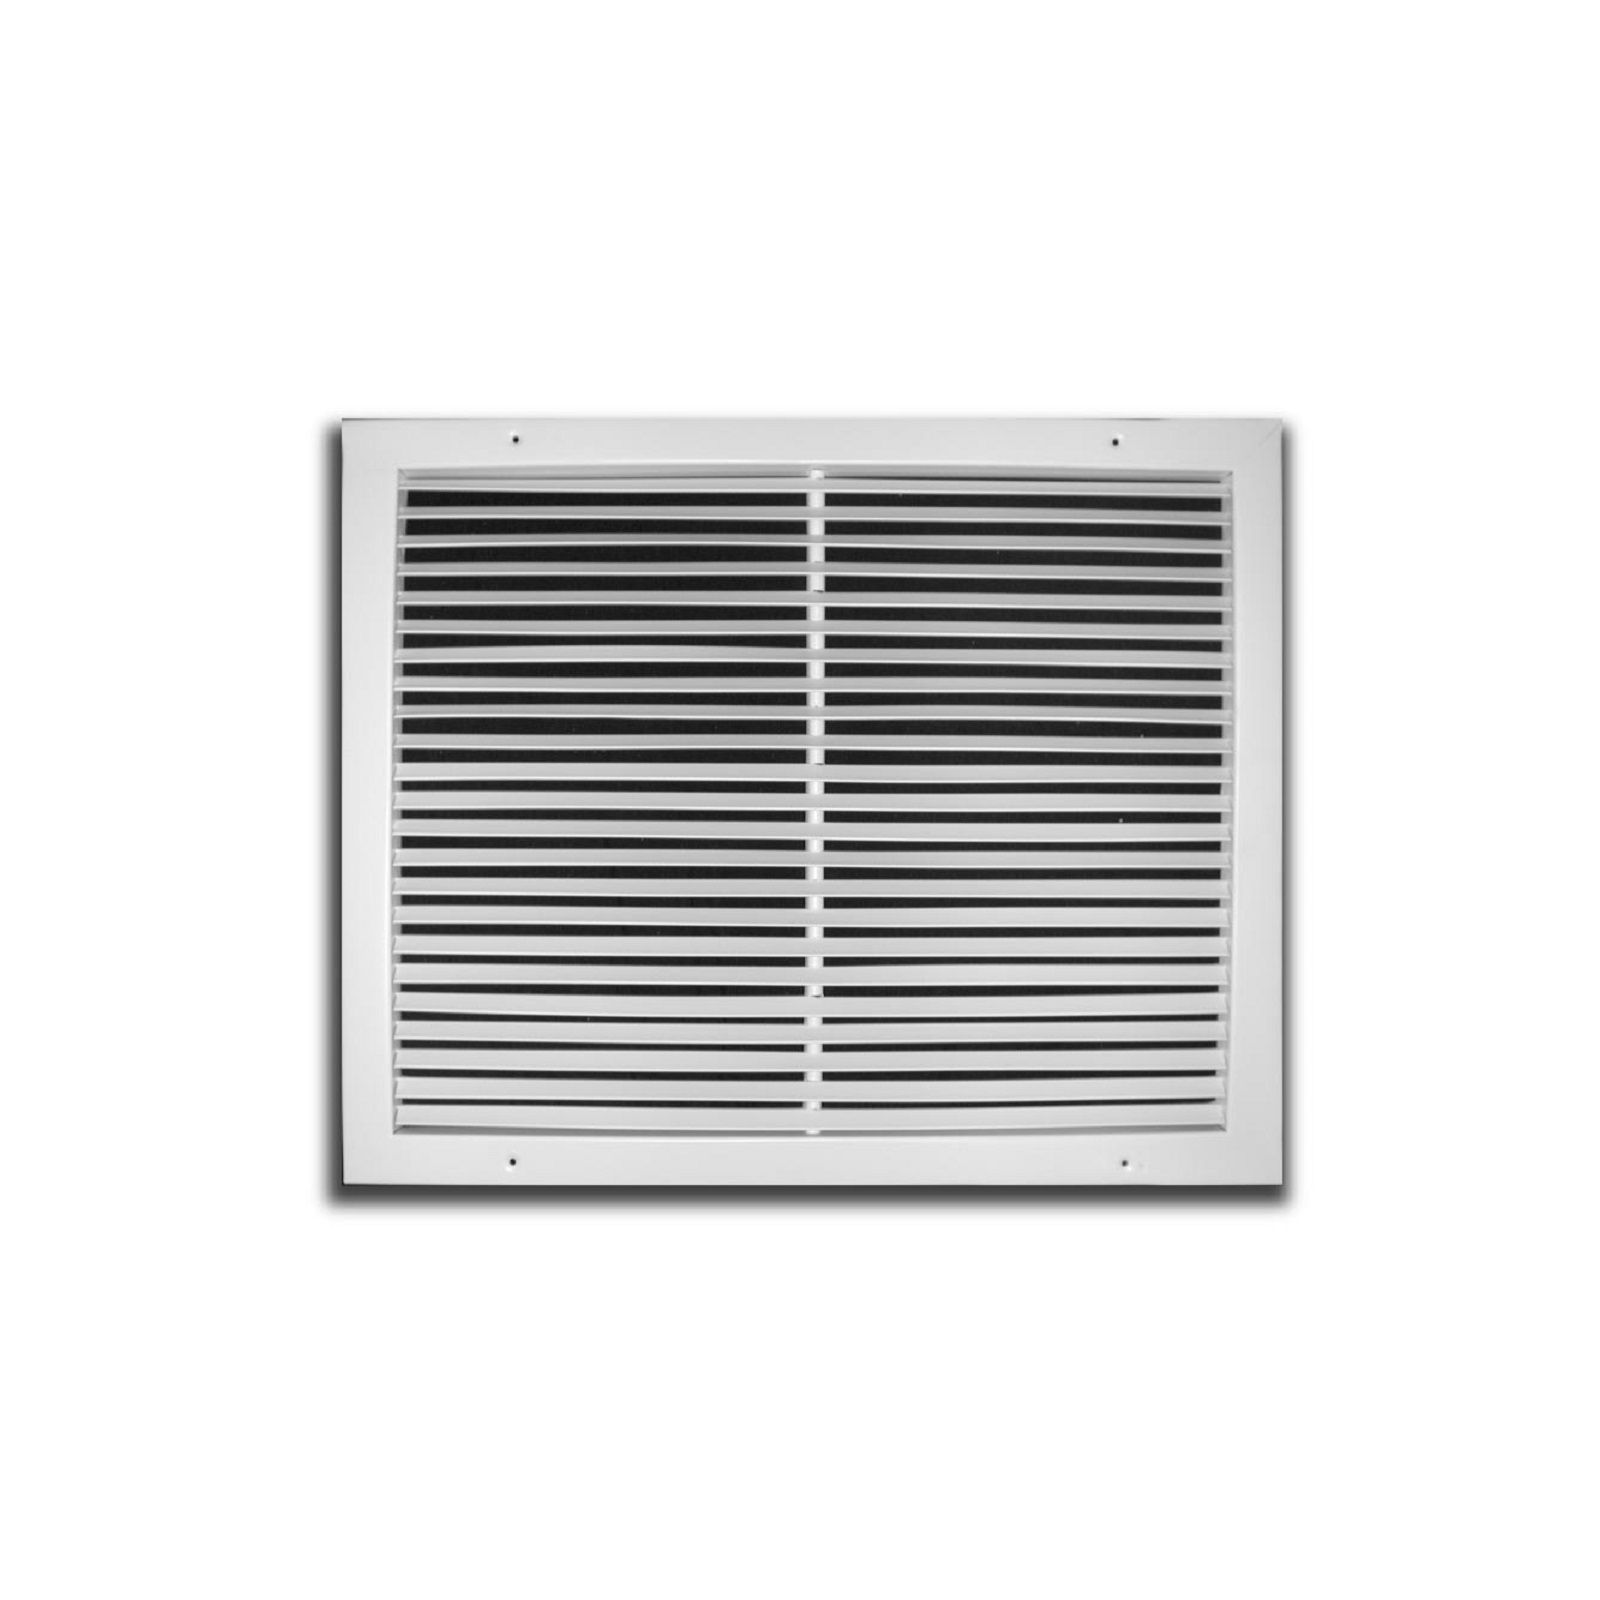 "TRUaire 270 16X16 - Steel Fixed Bar Return Air Grille, White, 16"" X 16"""